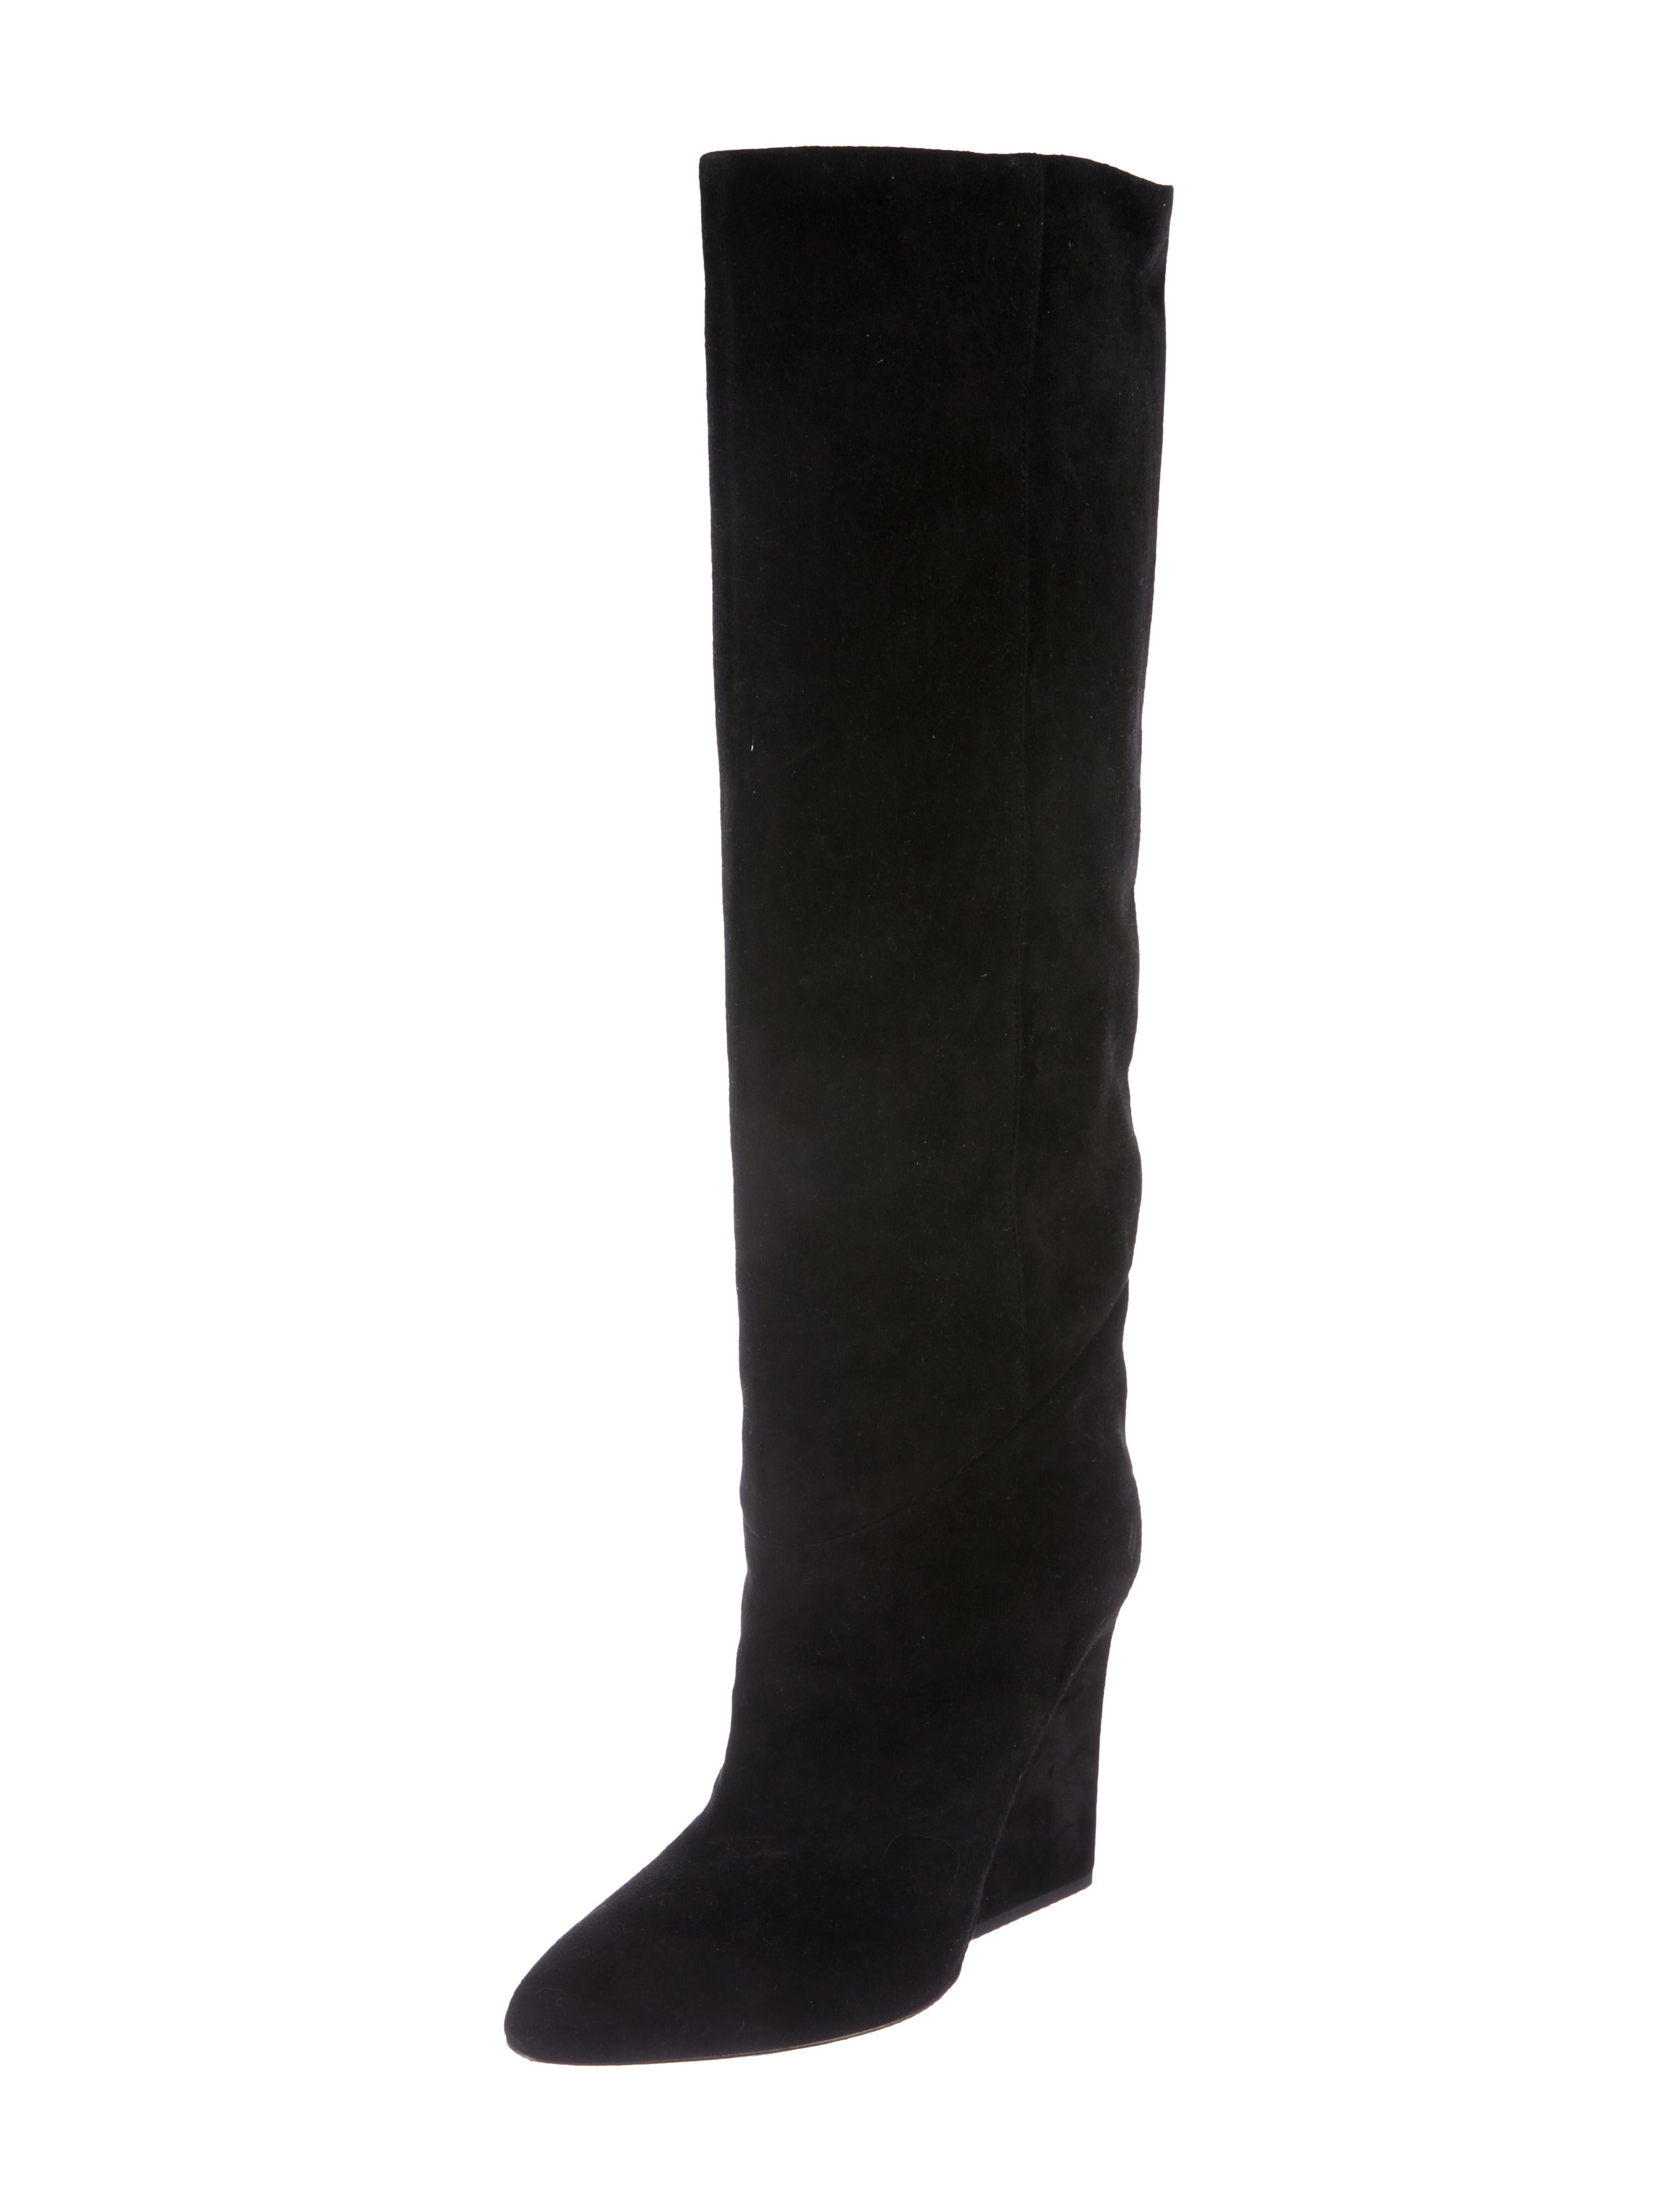 Jimmy Choo Cartel Suede Knee-High Boots outlet visa payment popular cheap price outlet for cheap 2014 for sale nrY3o